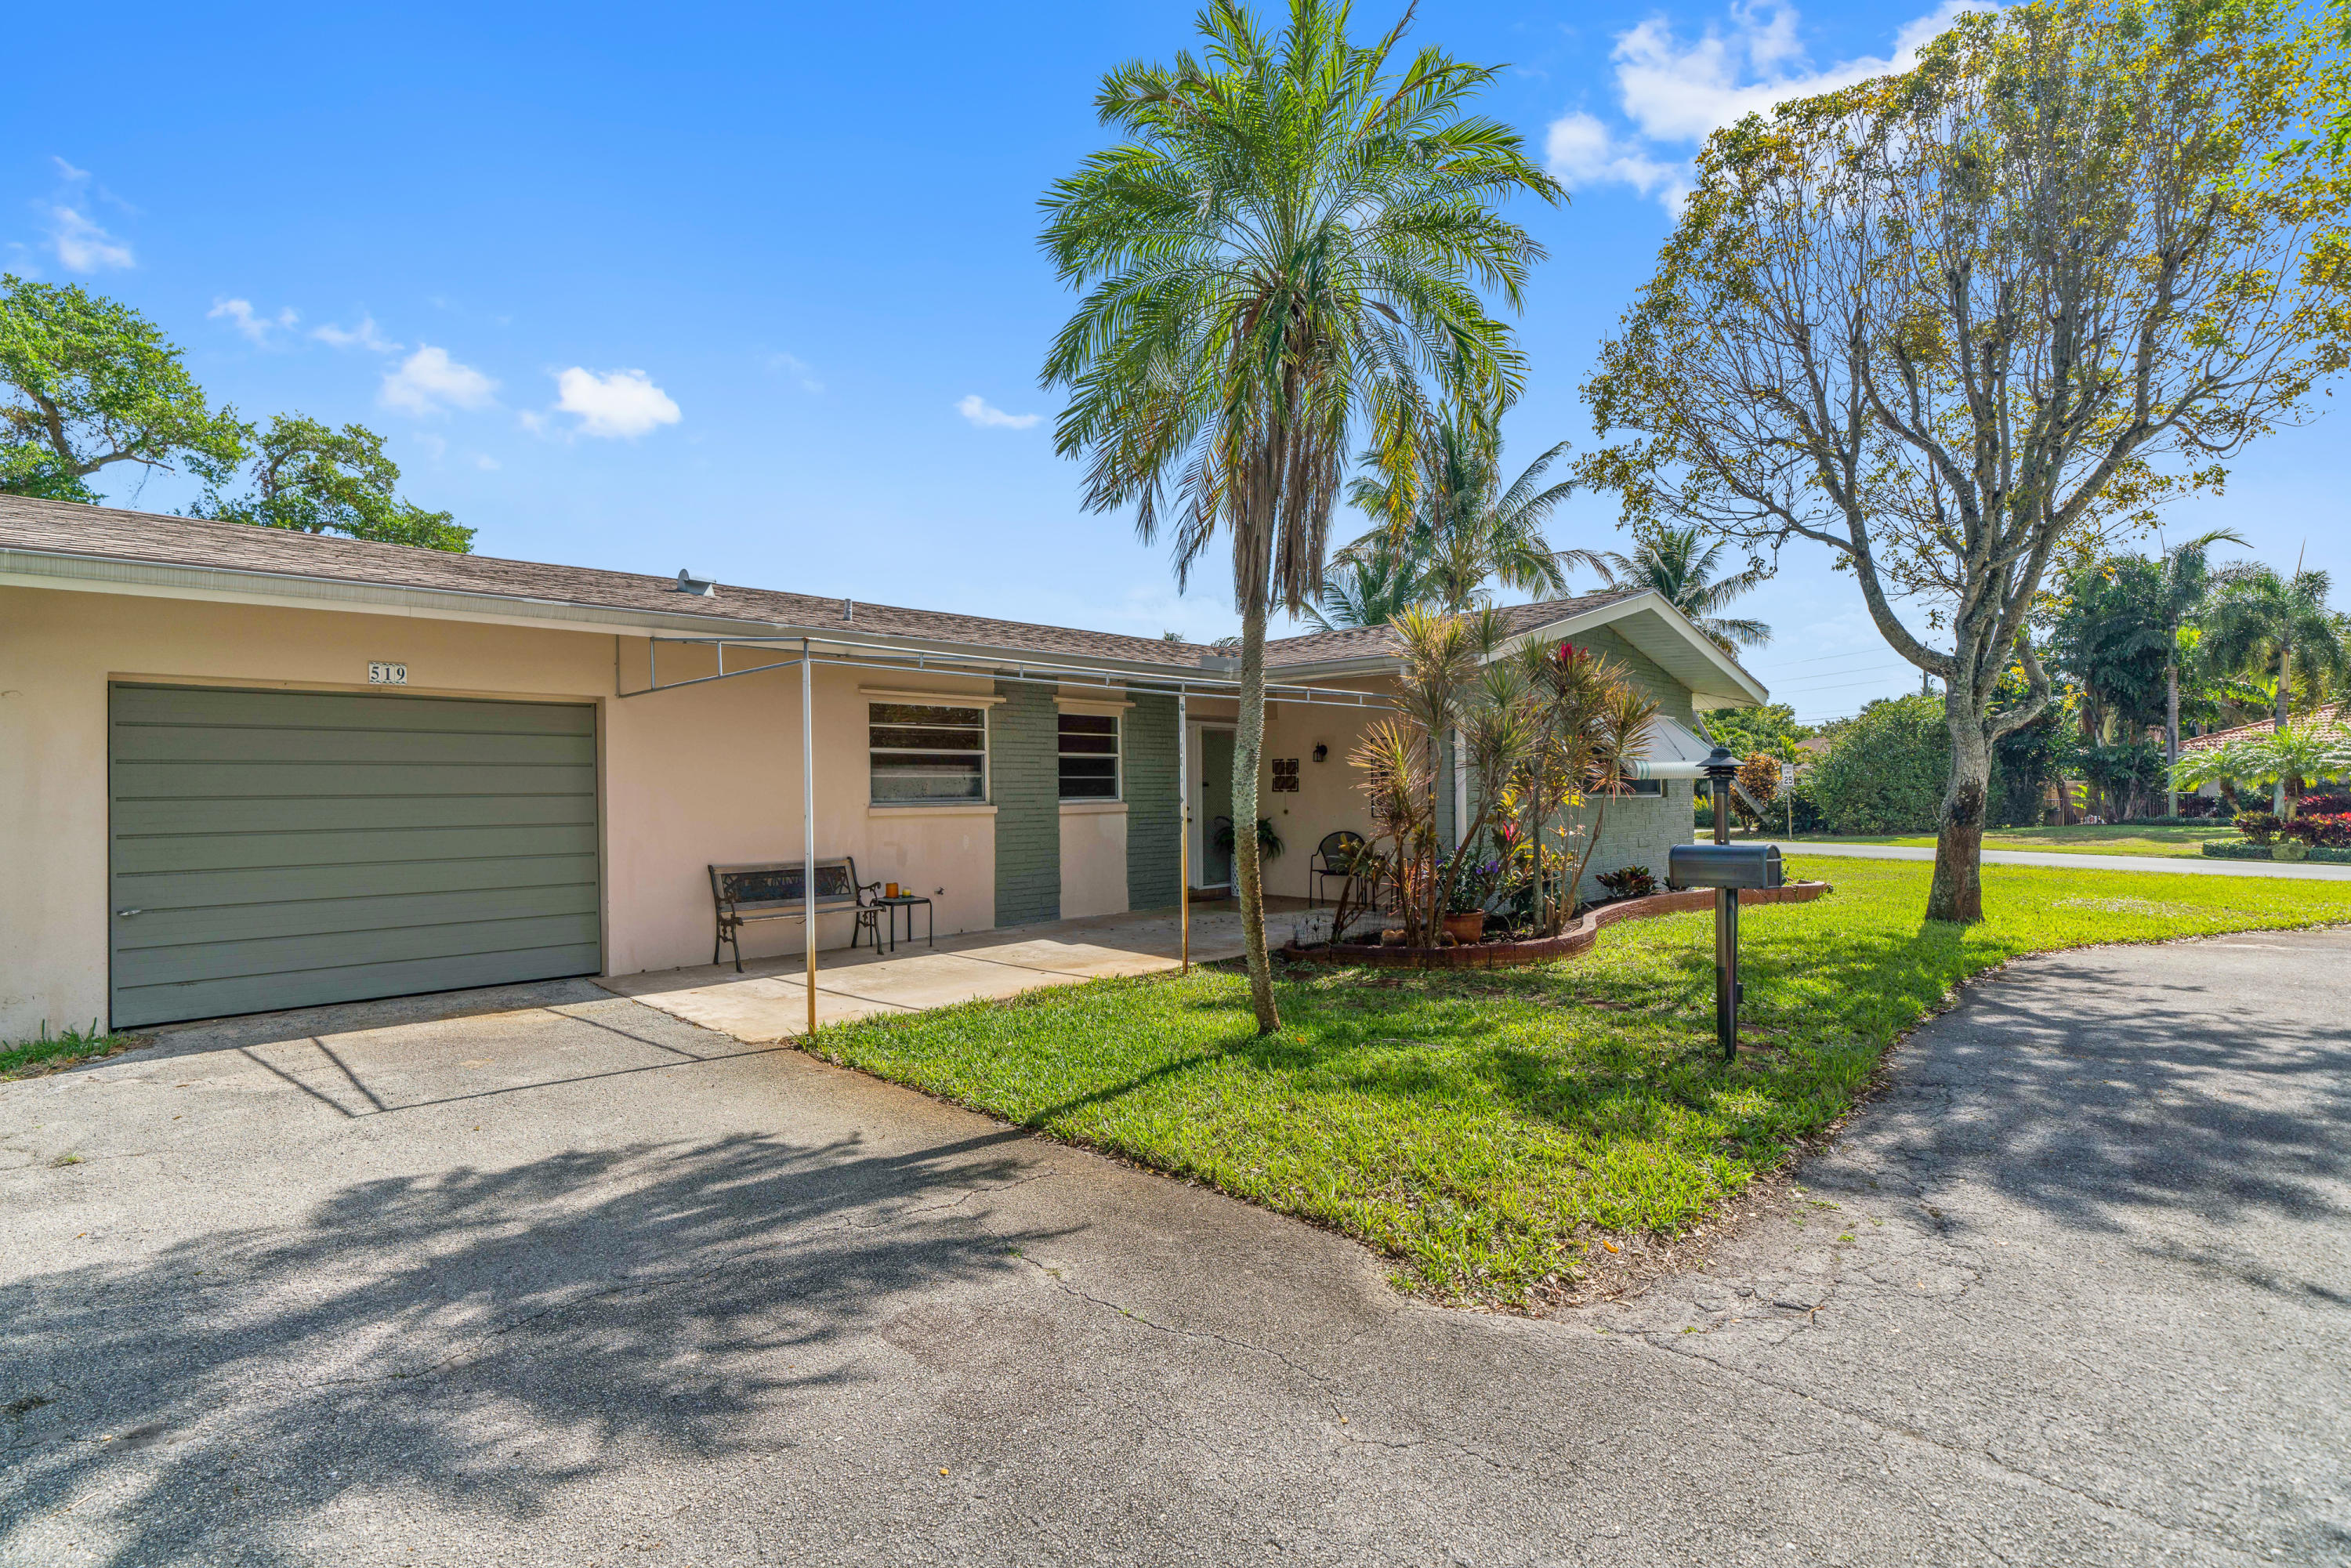 Traditional Lake Ida home sitting on a corner lot on one of the neighborhood's nicest streets with excellent proximity to downtown and the beaches. Split bedroom floor plan with living room open to the Florida room. Charming home in a great location. New AC in 2018, roof replaced in 2005.